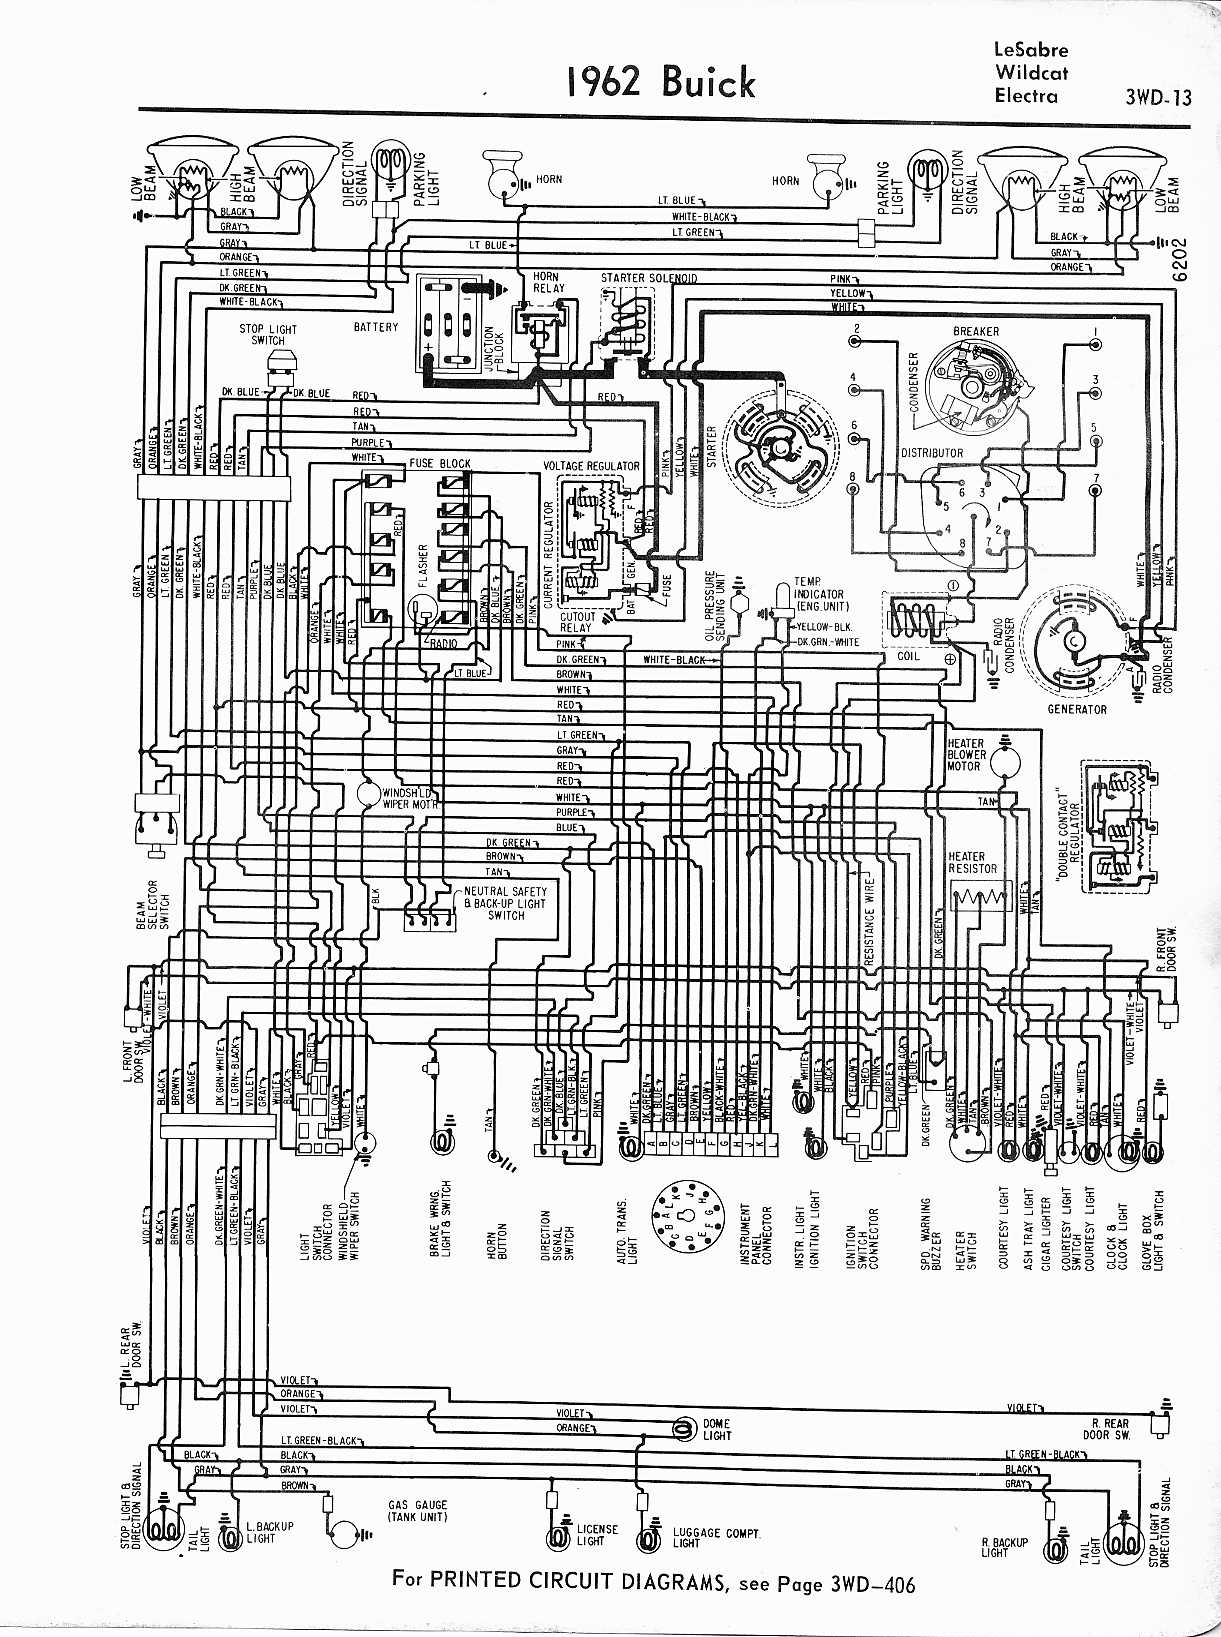 1967 buick skylark fuse box diagram online schematic diagram u2022 rh holyoak co  1964 buick skylark fuse box diagram